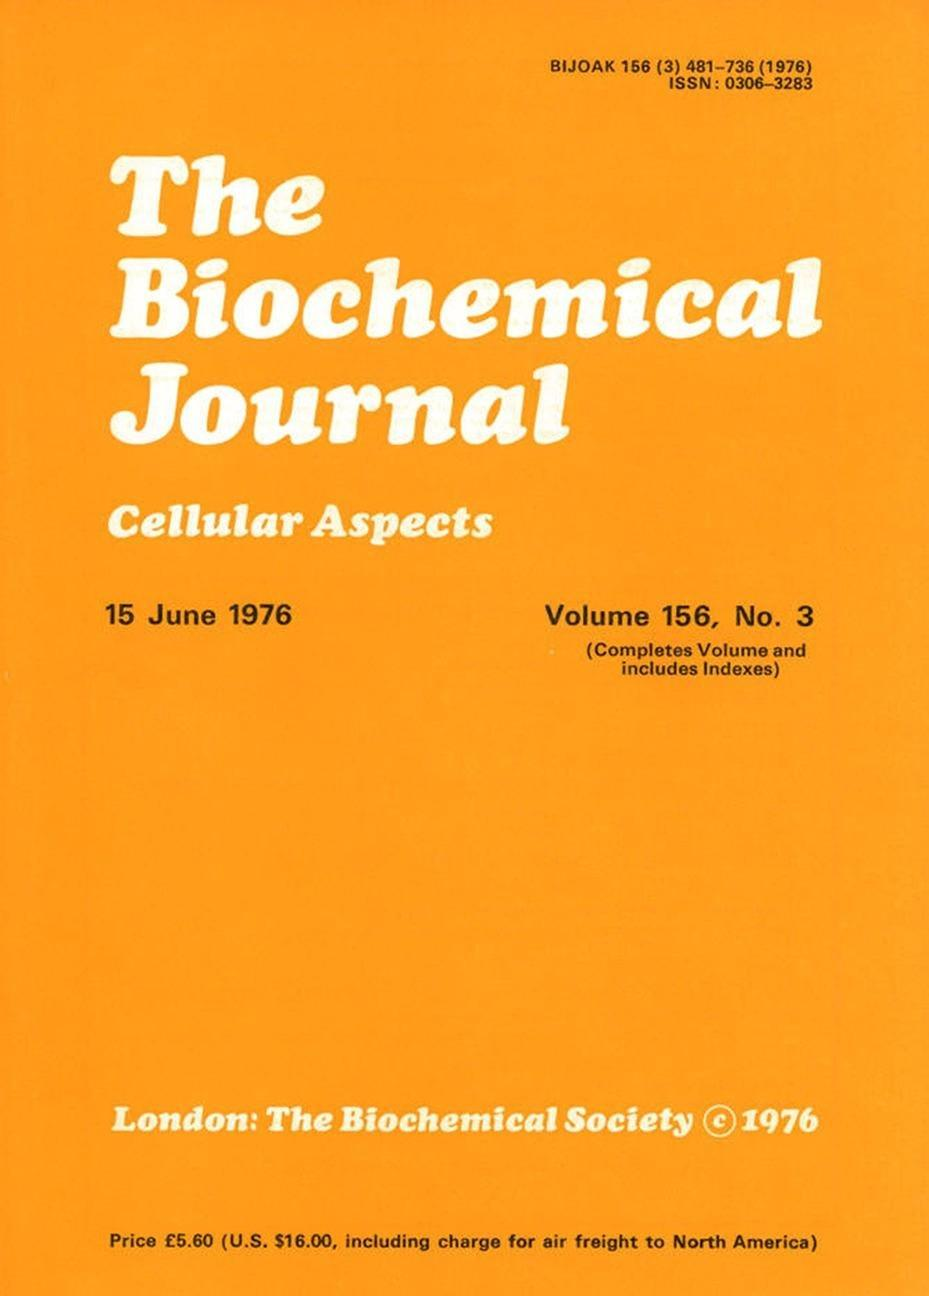 Lipogenesis From Ketone Bodies In Rat Brain. Evidence For Conversion Of Acetoacetate Into Acetyl-coenzyme A In The Cytosol